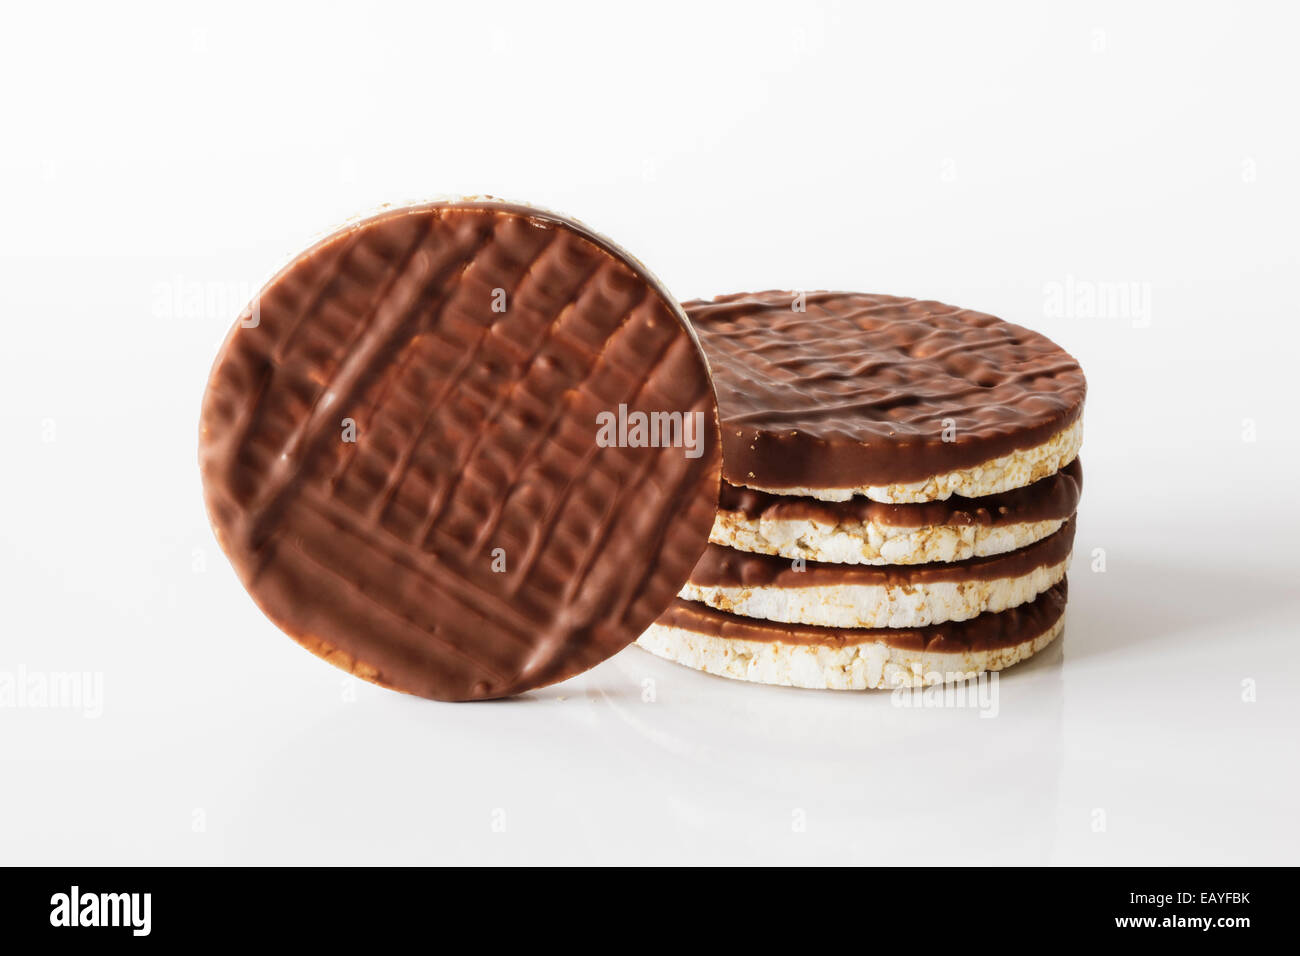 Stack of chocolate rice cakes - Stock Image